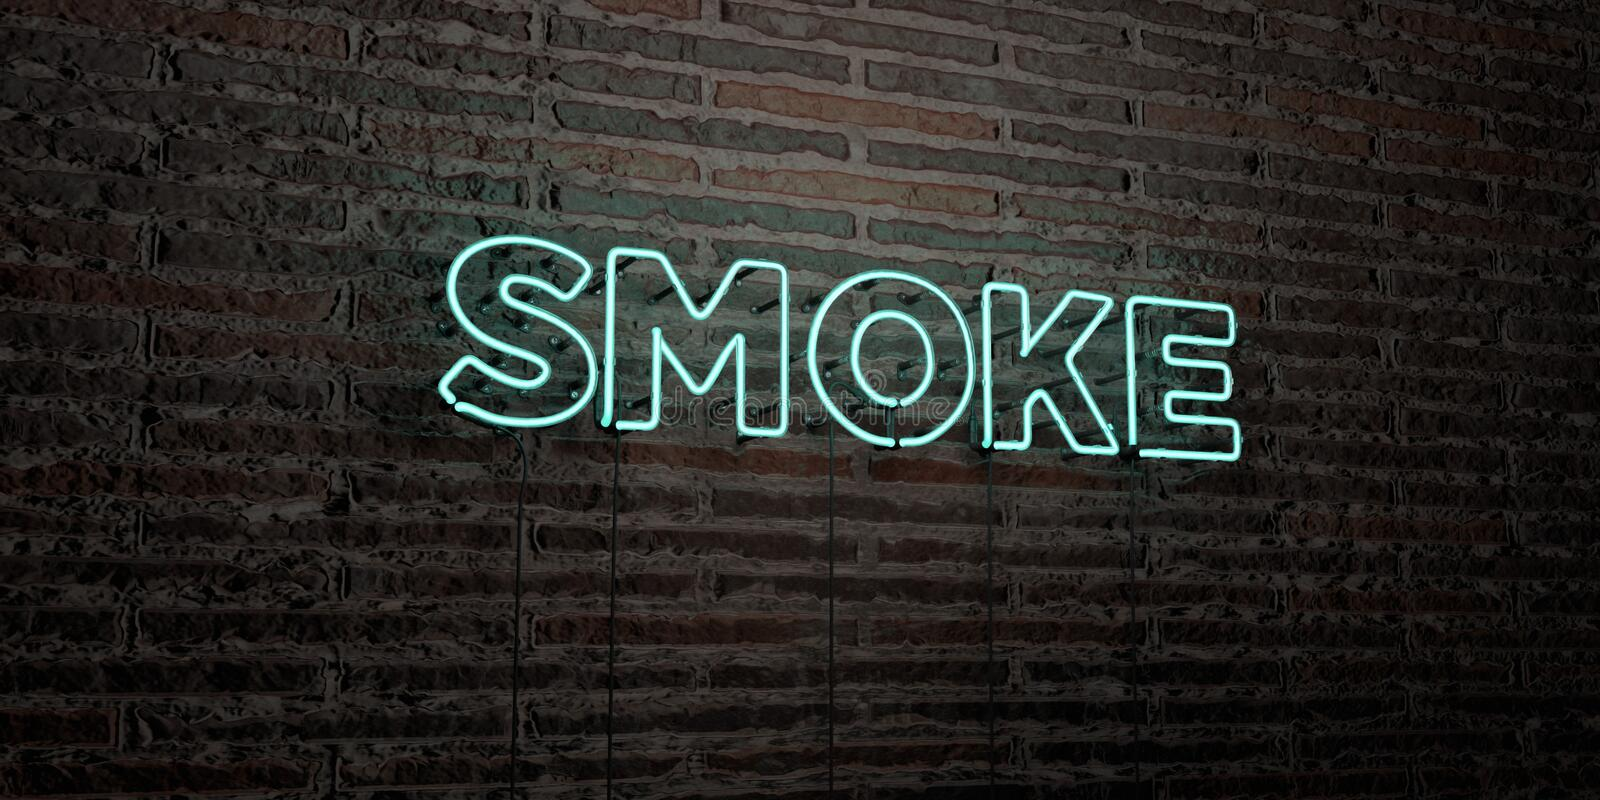 SMOKE -Realistic Neon Sign on Brick Wall background - 3D rendered royalty free stock image stock illustration